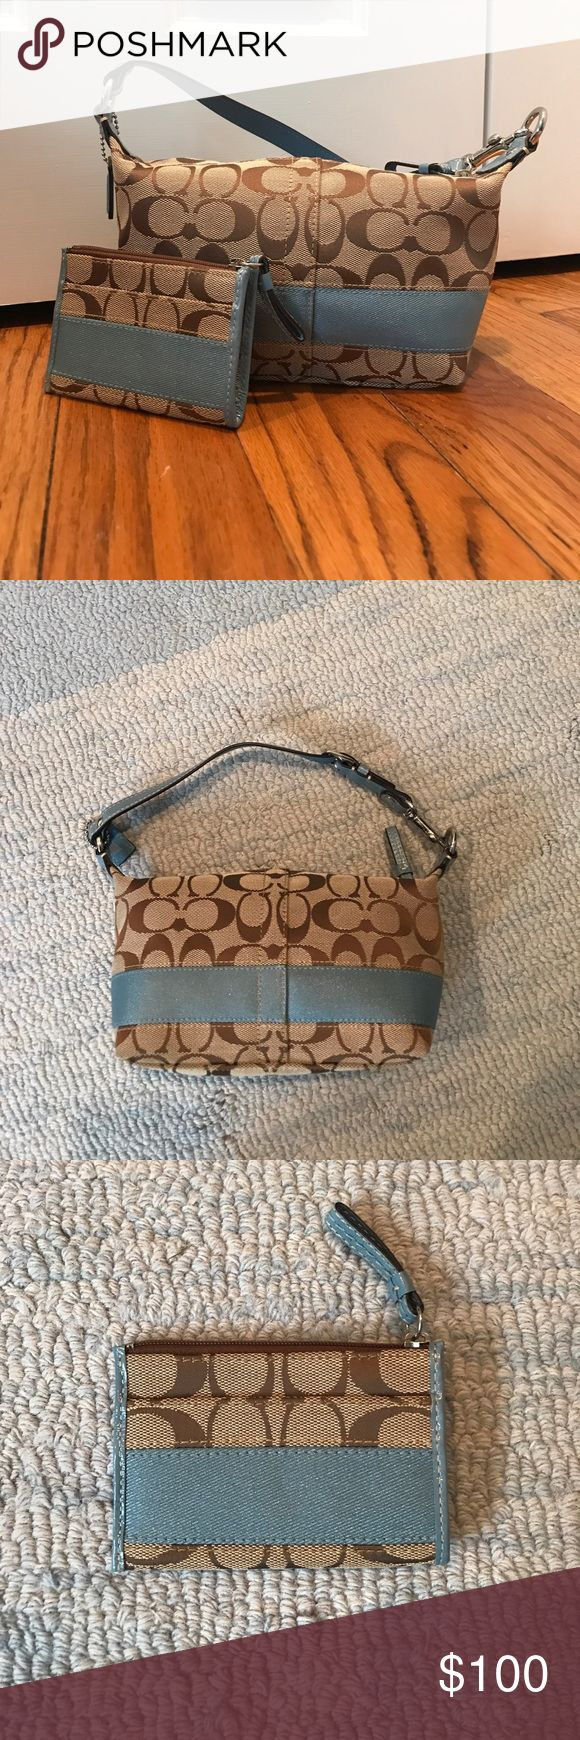 Coach Satchel Purse Authentic Coach satchel purse and matching card holder. Classic Coach design featuring their logo compliment with blue detail. Excellent condition. Never used. Coach Bags Mini Bags